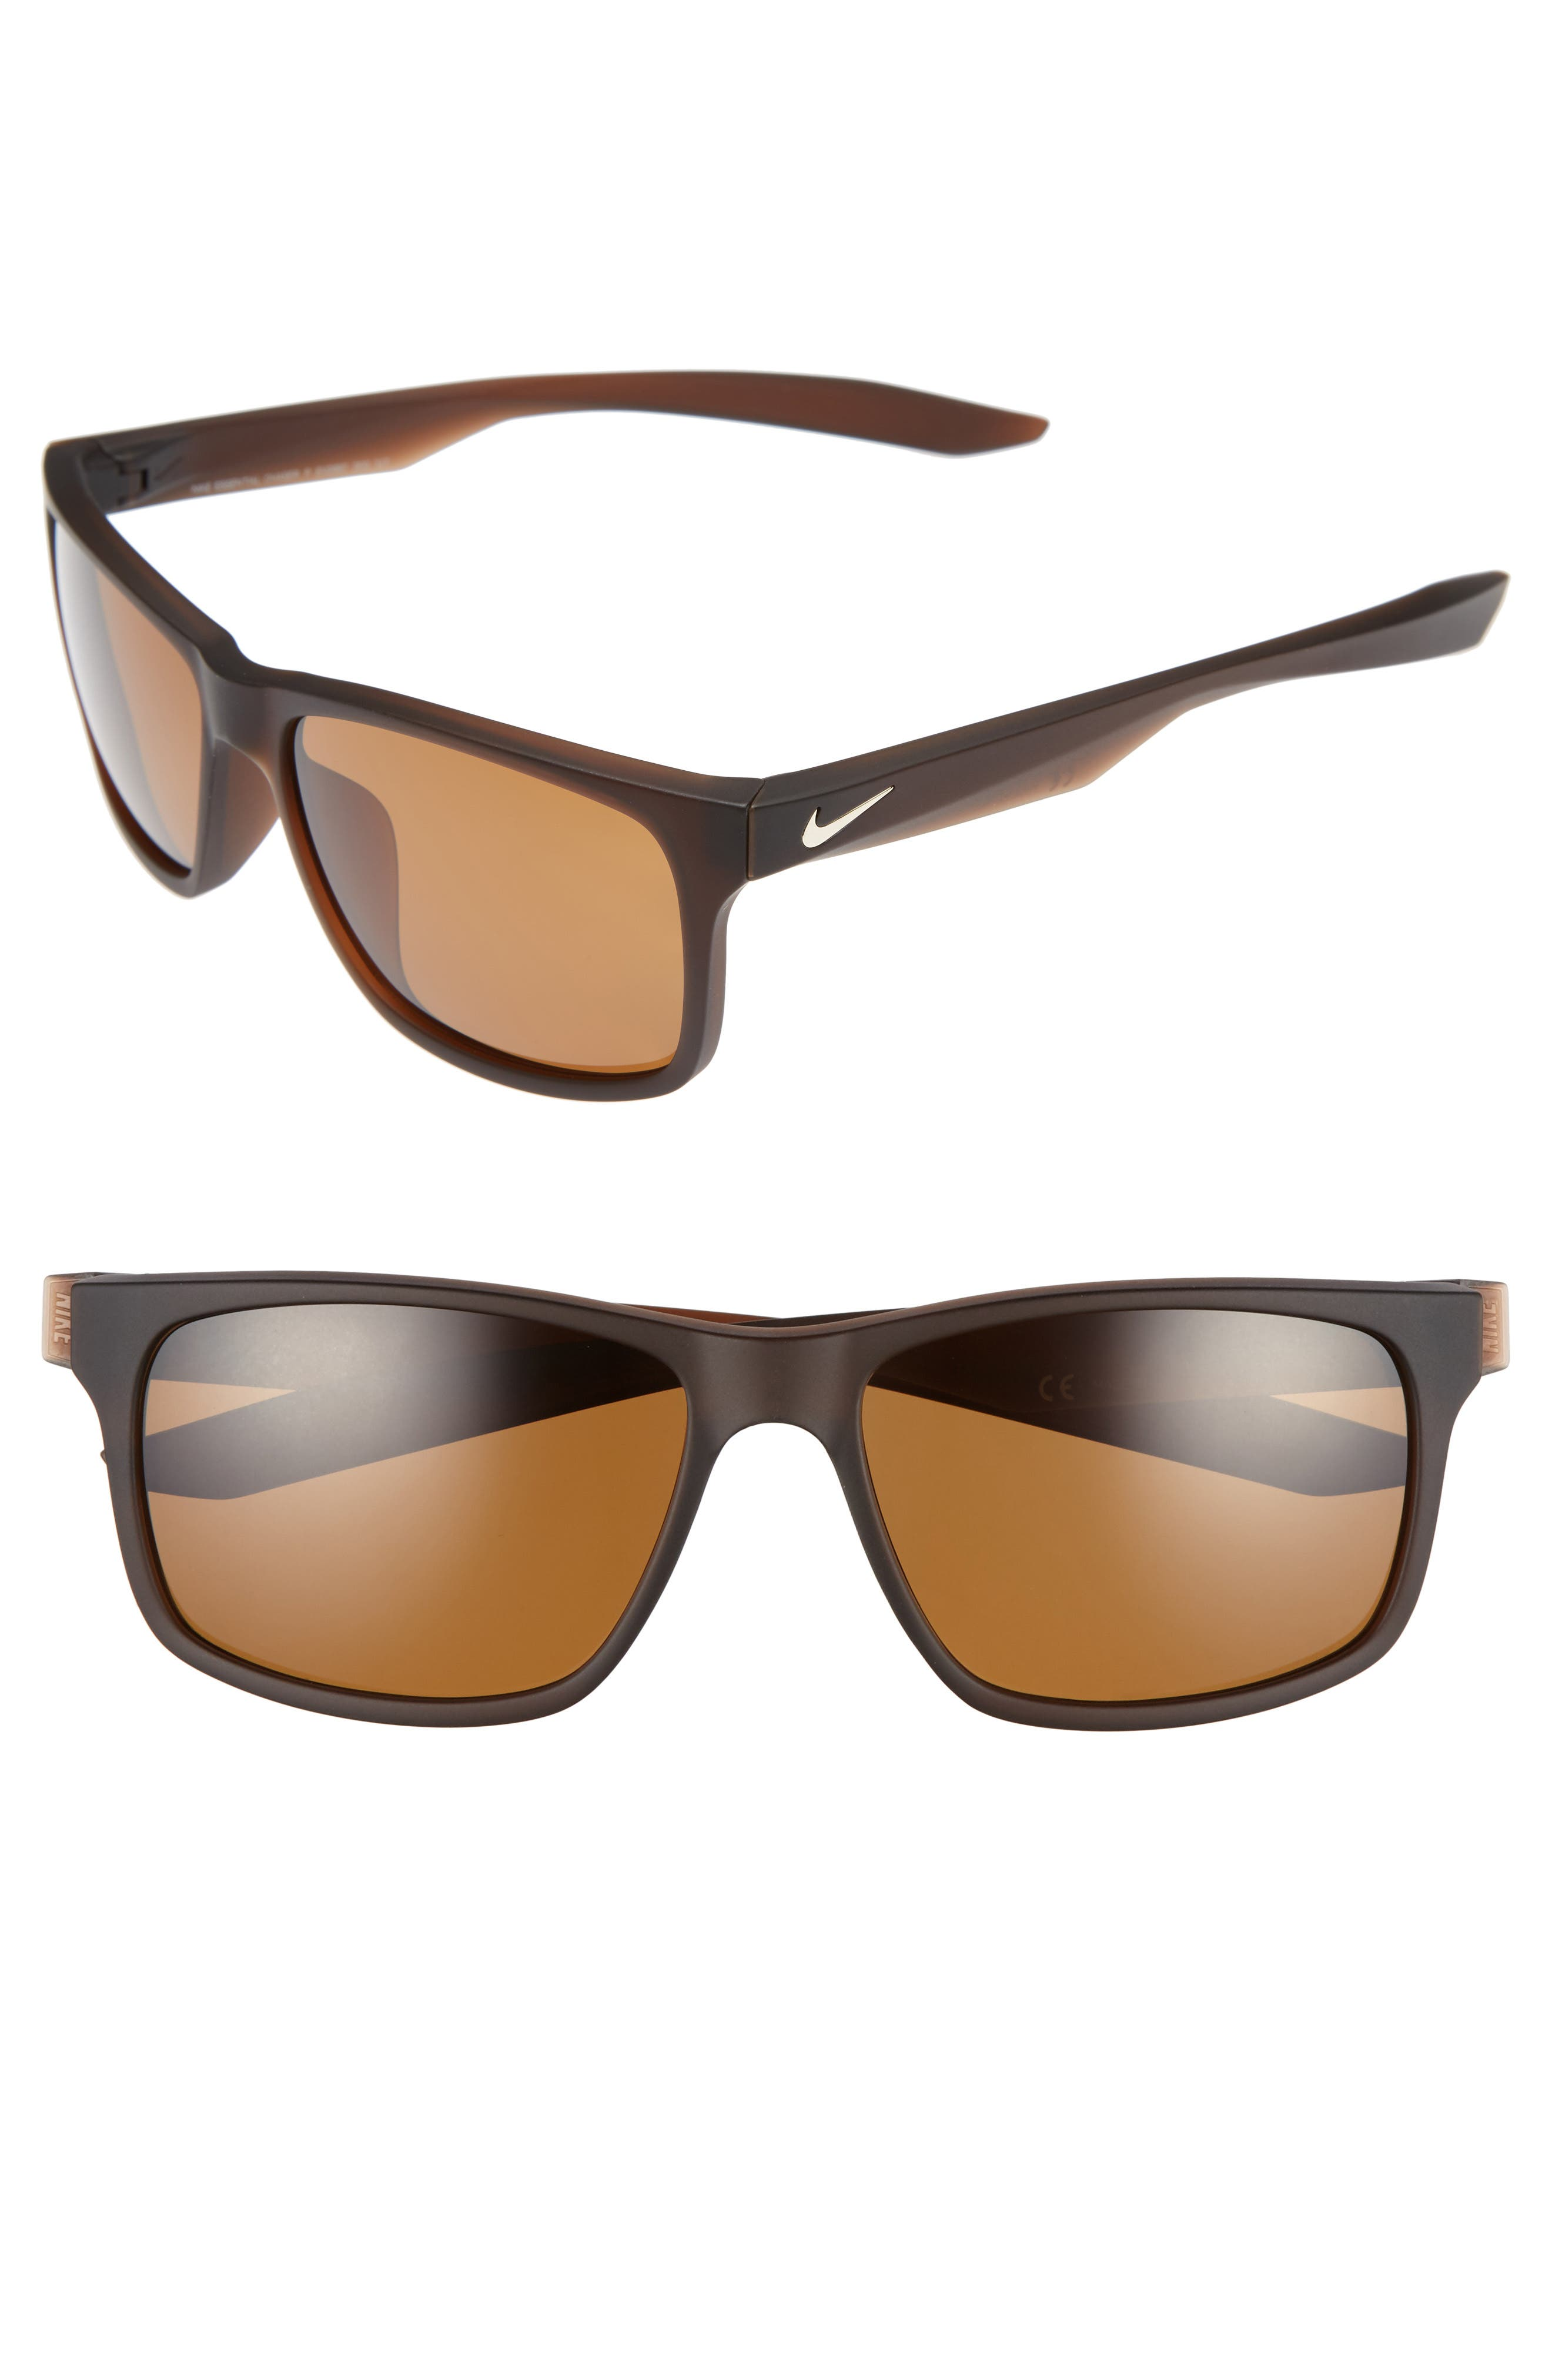 Nike Essential Chaser 59mm Polarized Sunglasses